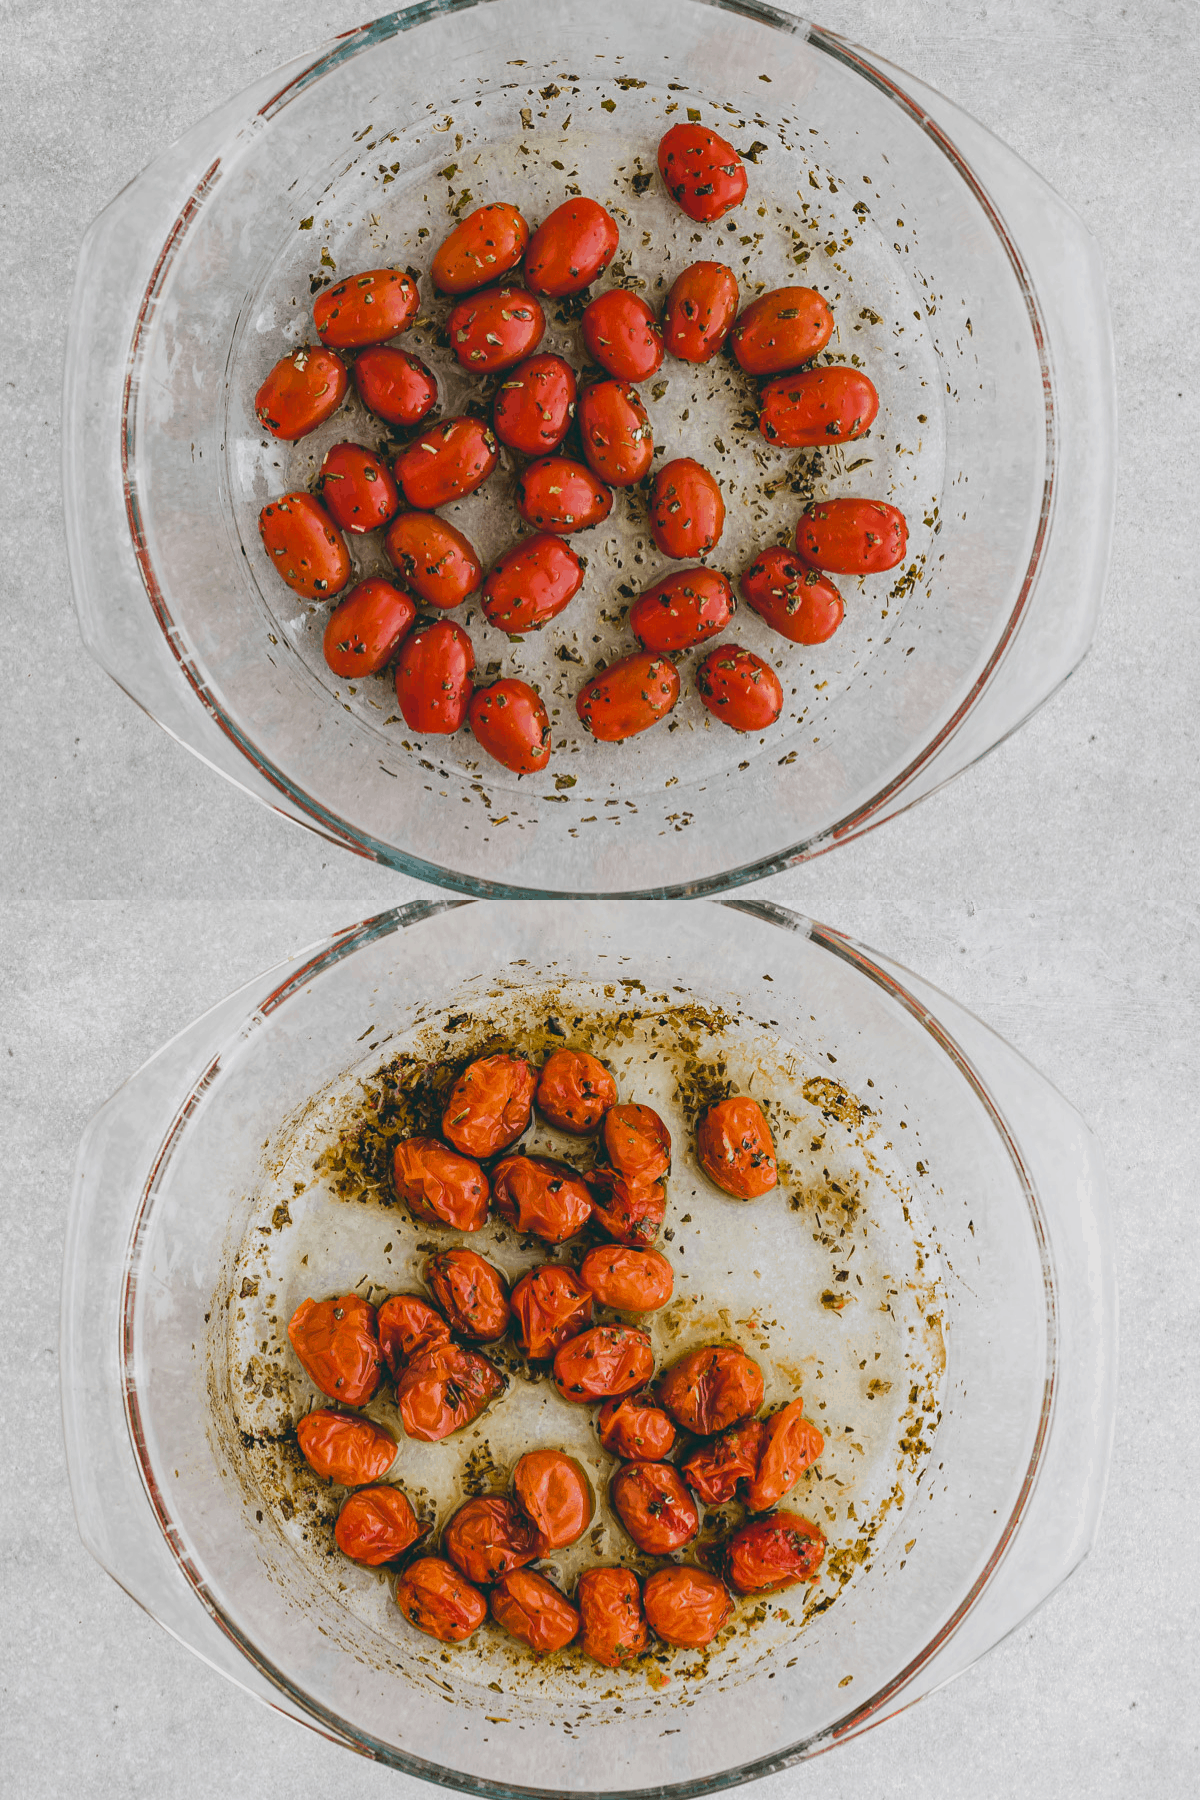 Oven Roaste Cherry Tomatoes Recipe Step 1-2